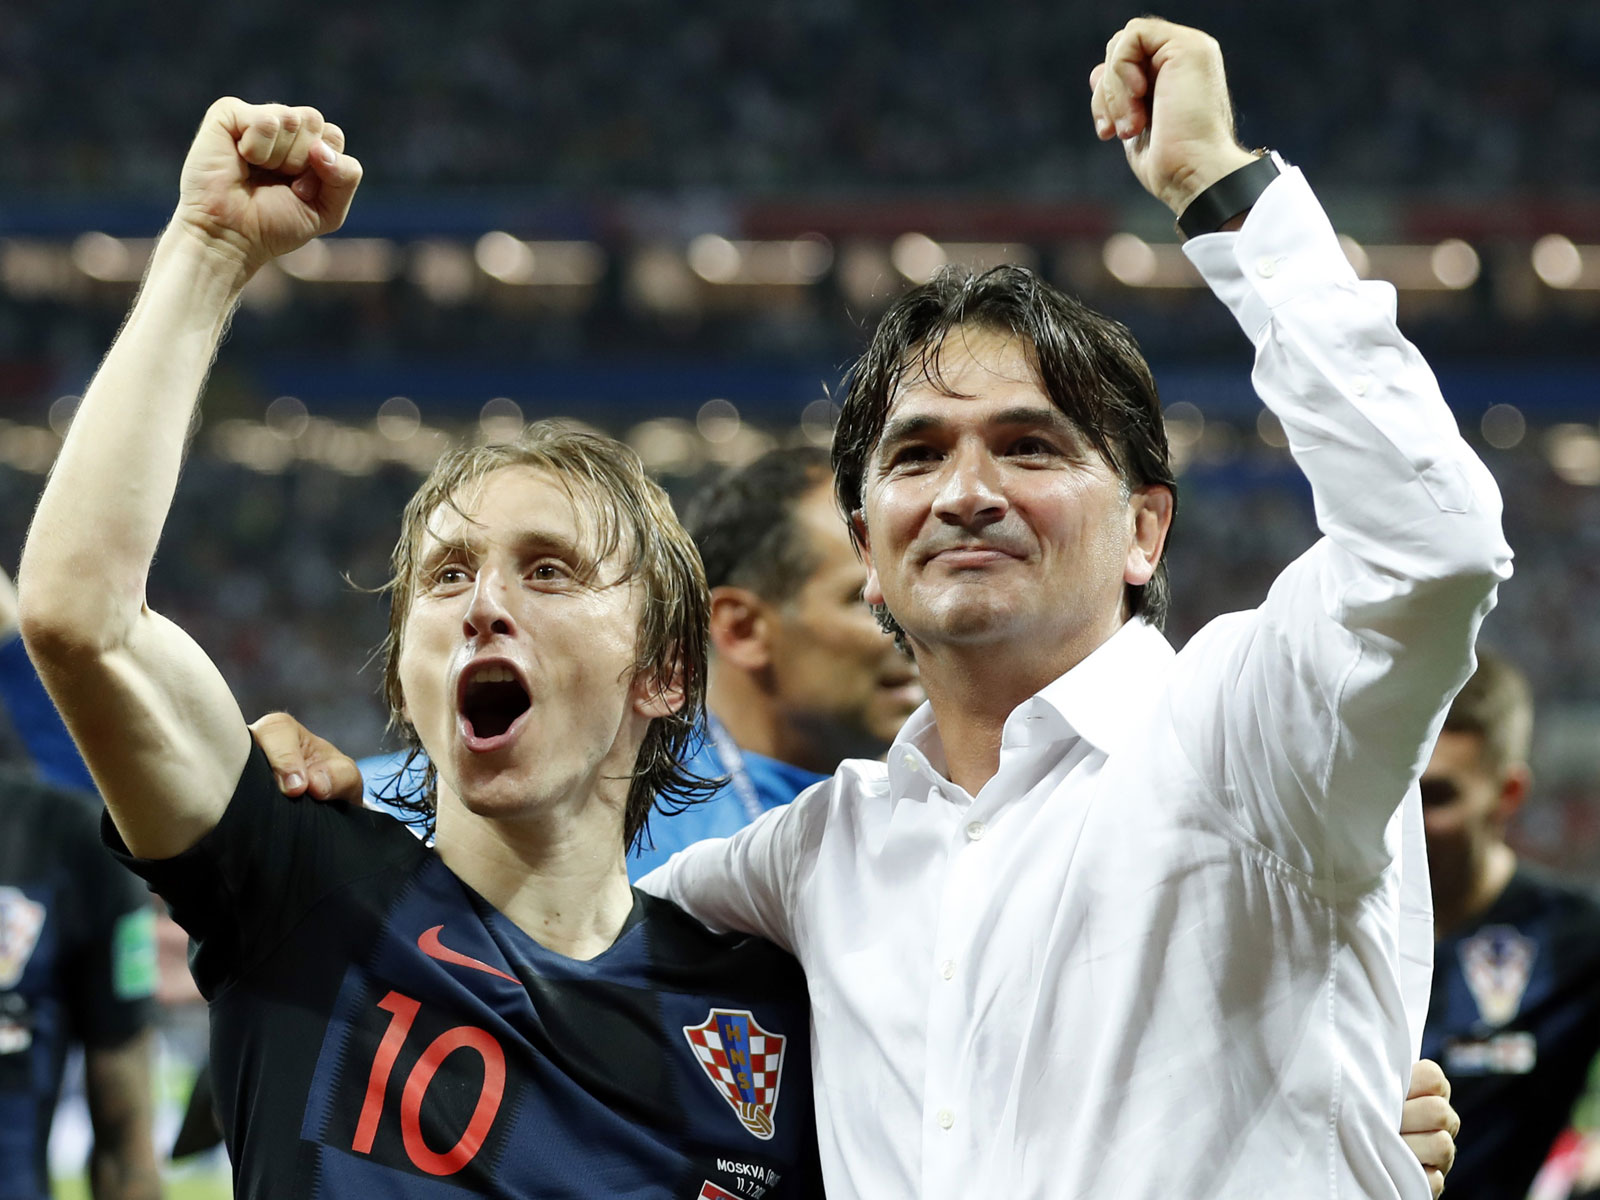 Croatia's Luka Modric and Zlatko Dalic celebrate the nation's first World Cup final berth